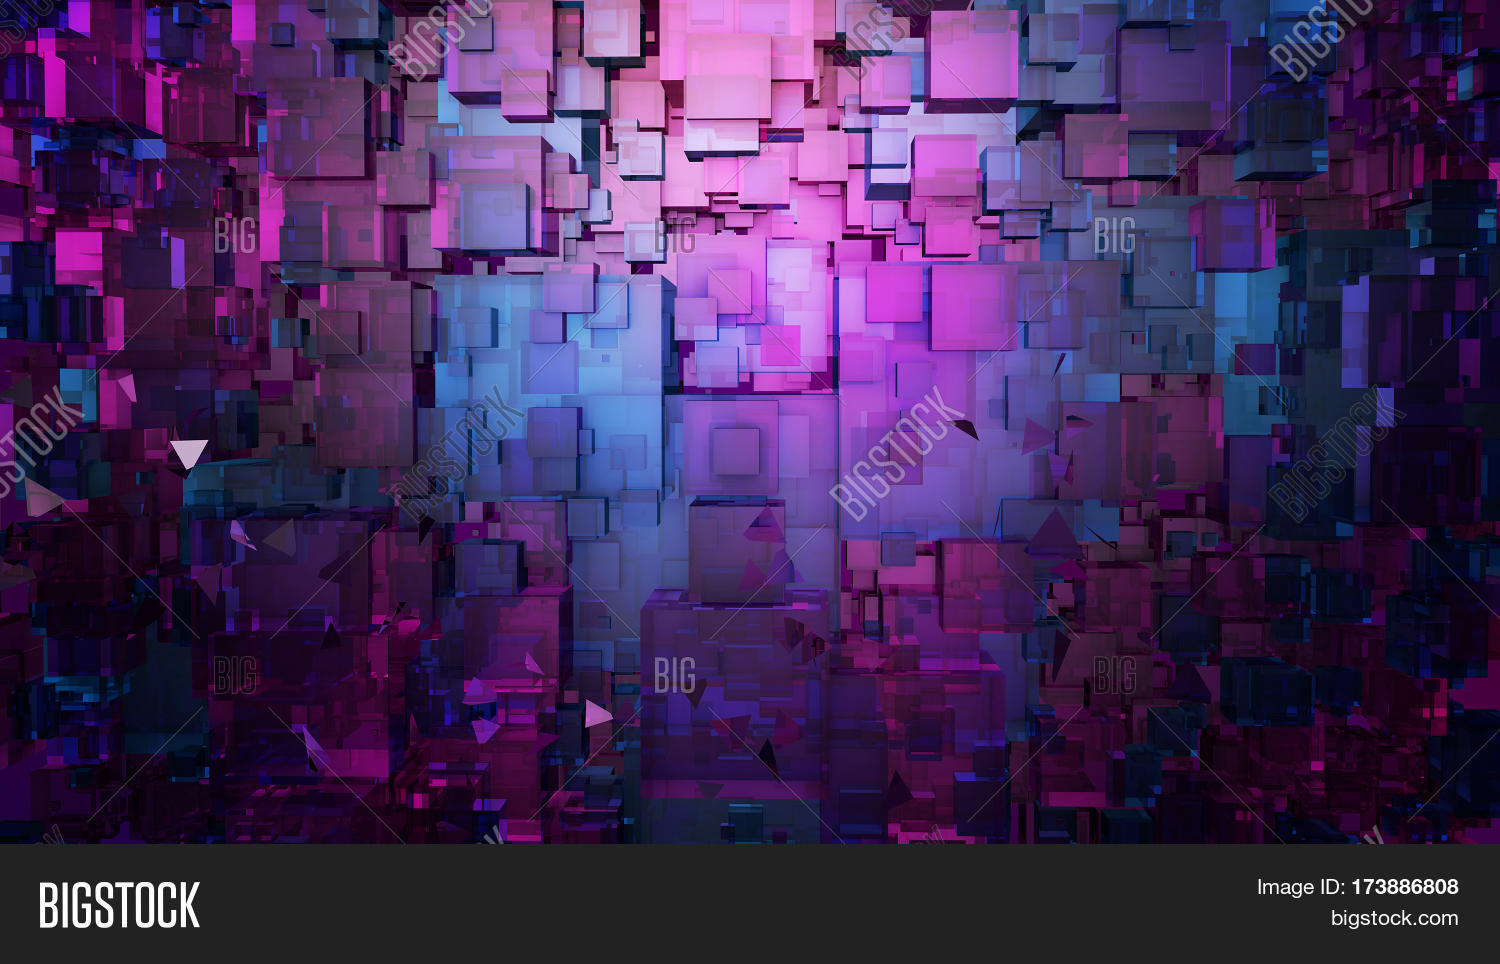 Abstract Digitalpink And Blue Architecture Background Computer Science Information Technology 3D Illustration